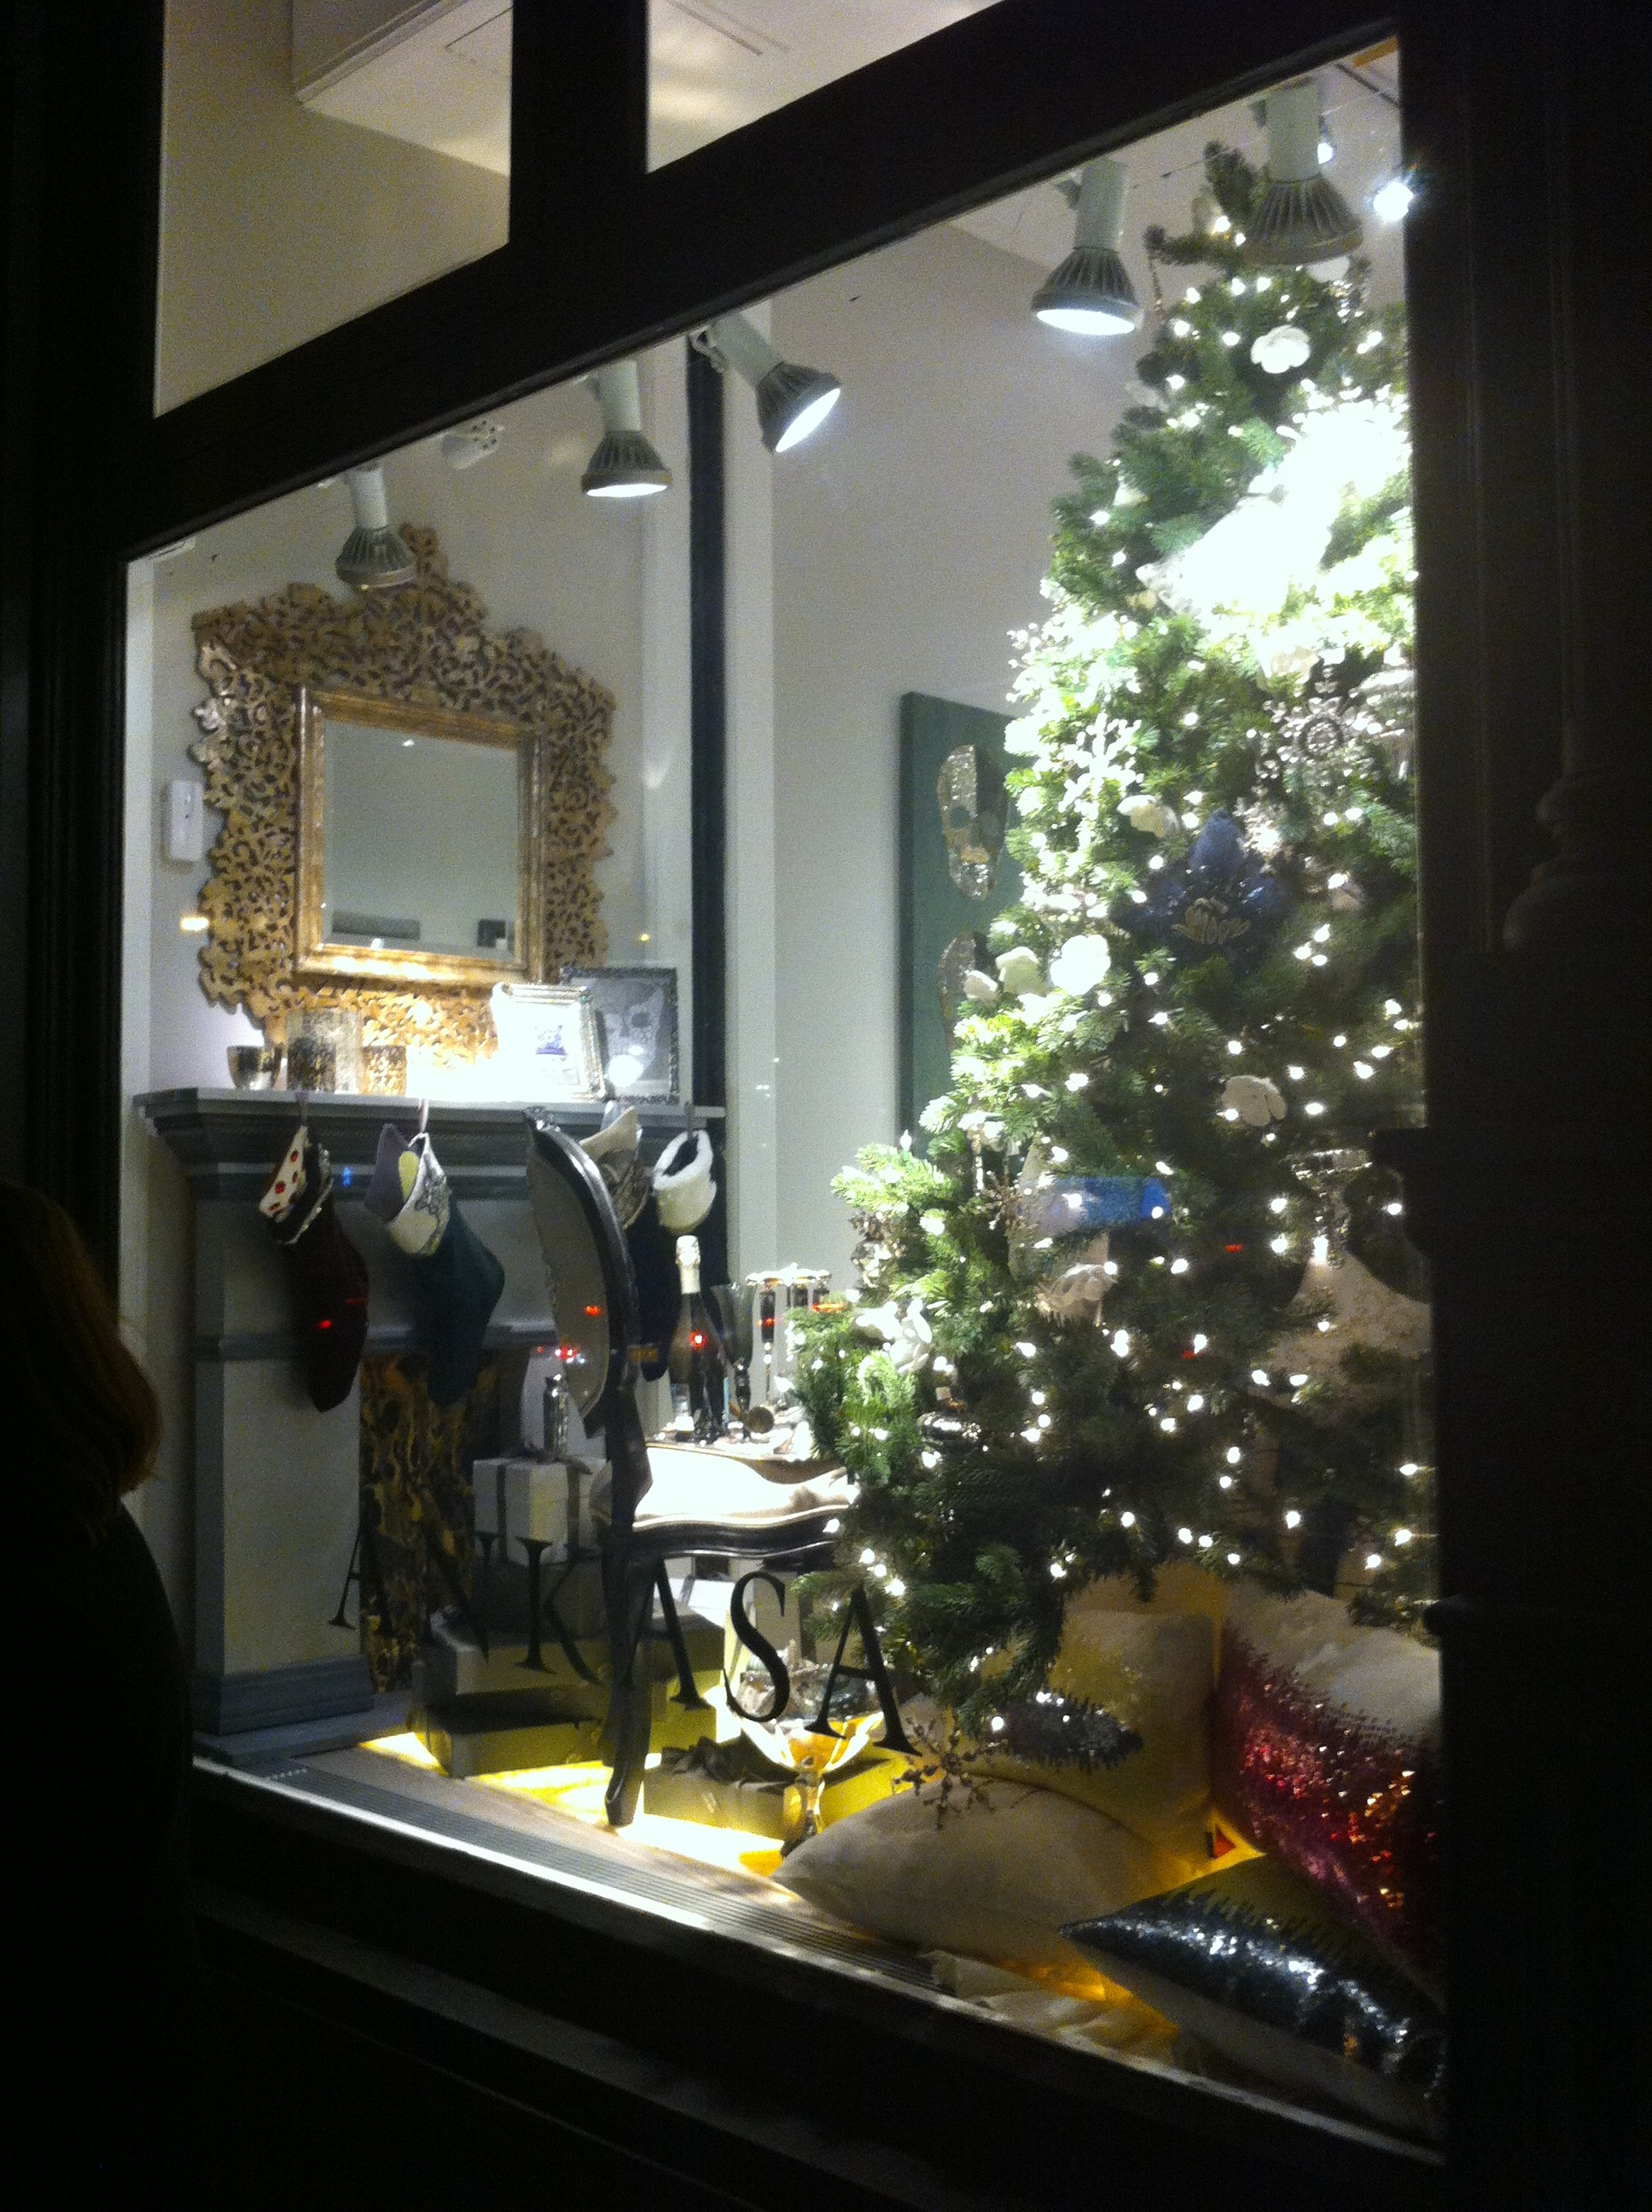 A holiday window pic of the Ankasa Soho store